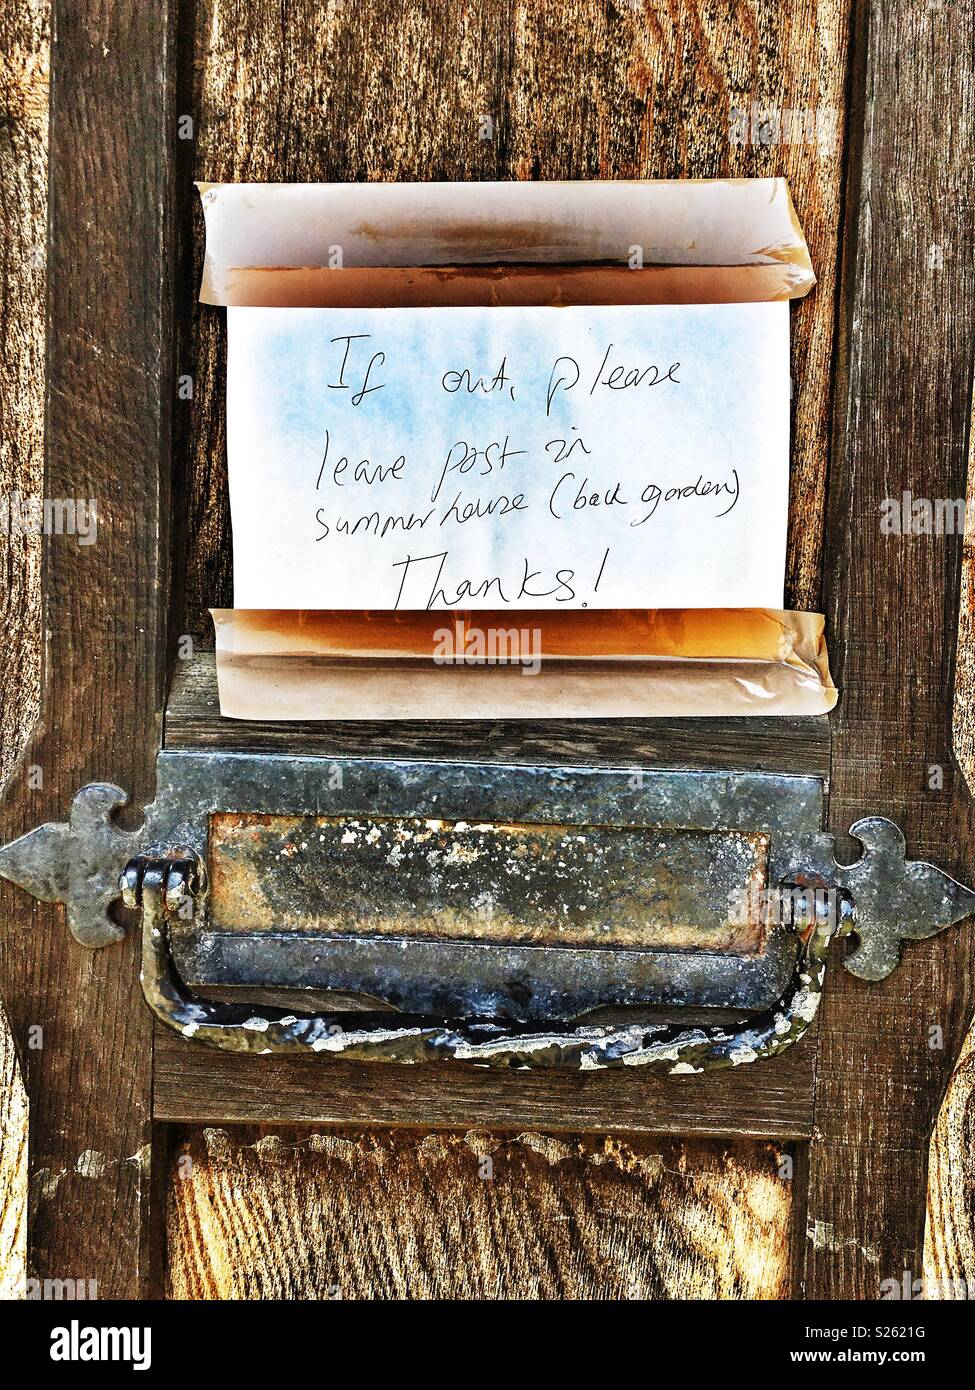 Message on front door for delivery driver. - Stock Image